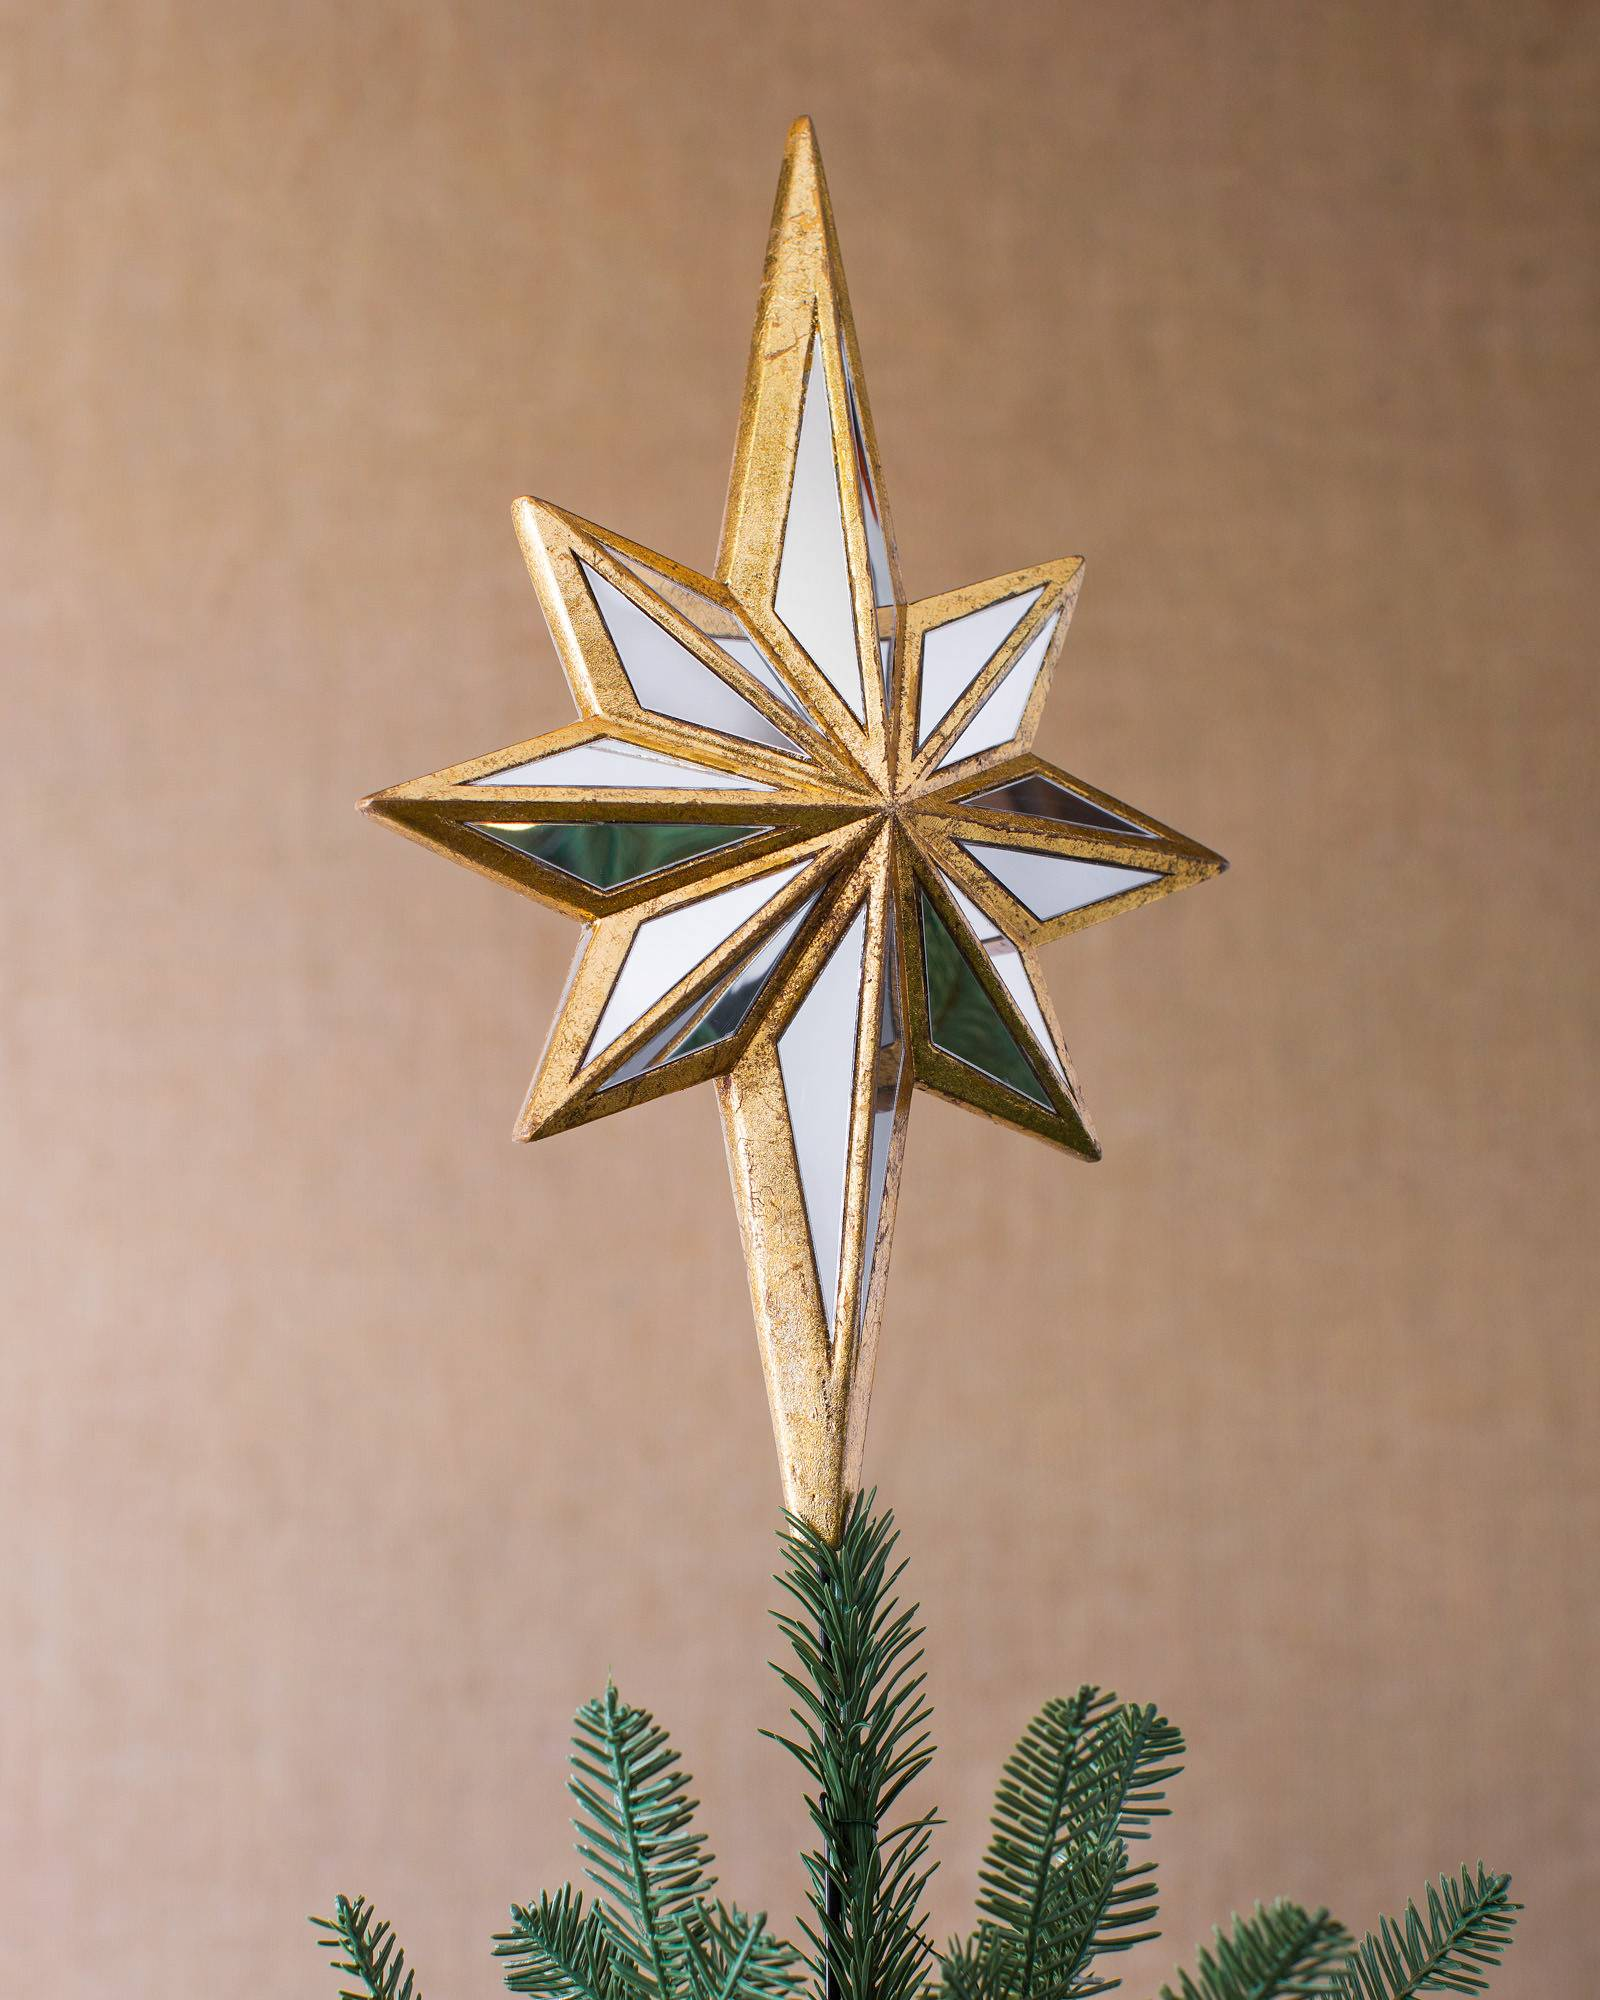 f9bab61a43b2b Double-Sided Mirrored Star Tree Topper